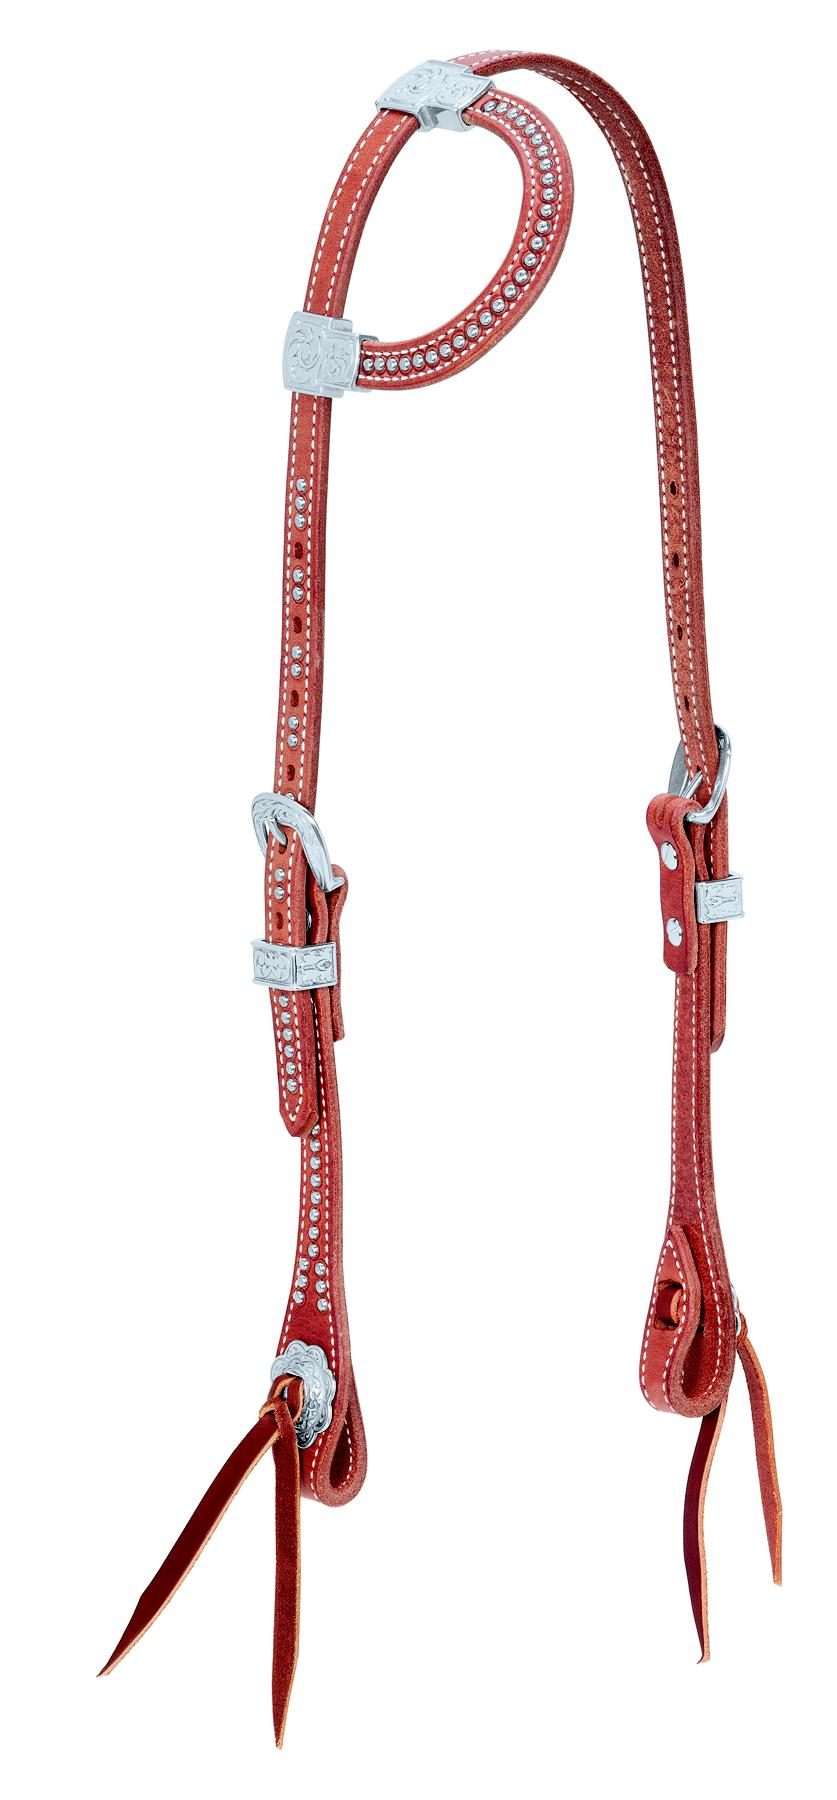 Weaver Leather Flat Sliding Ear Headstall With Spots